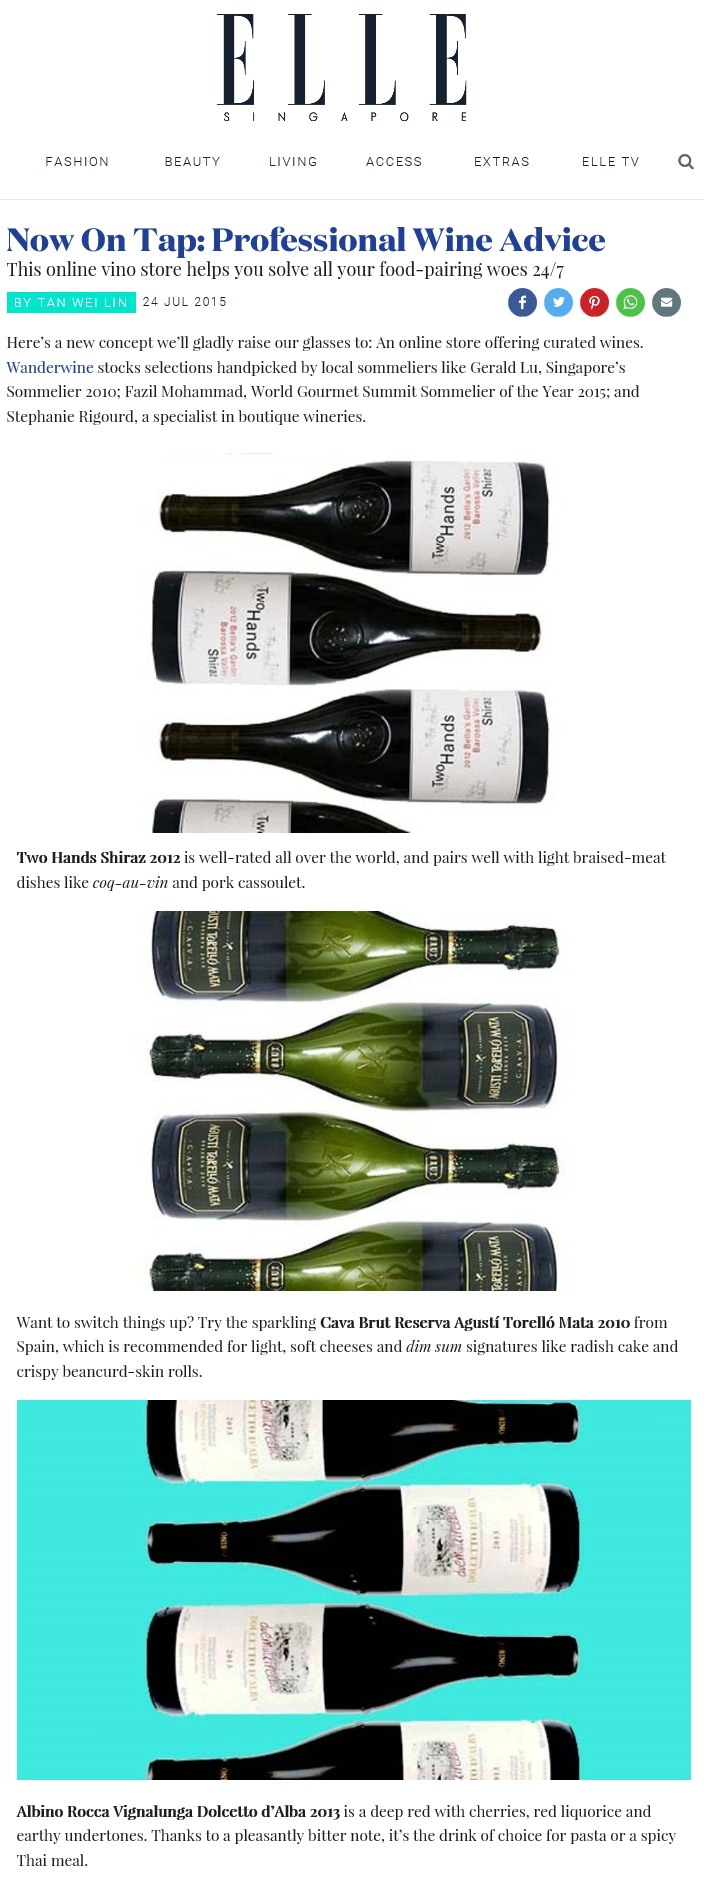 now on tap: professional wine advice